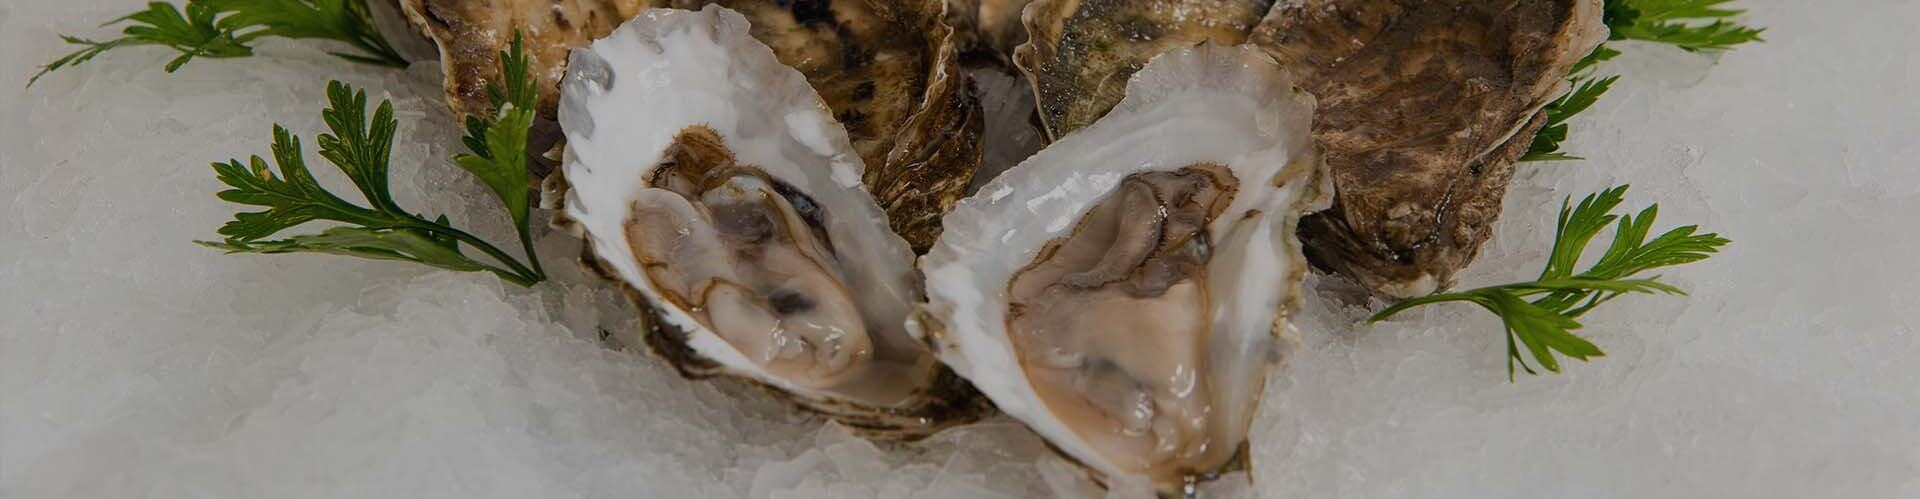 Seafood Suppliers- South Florida   New England Wholesale